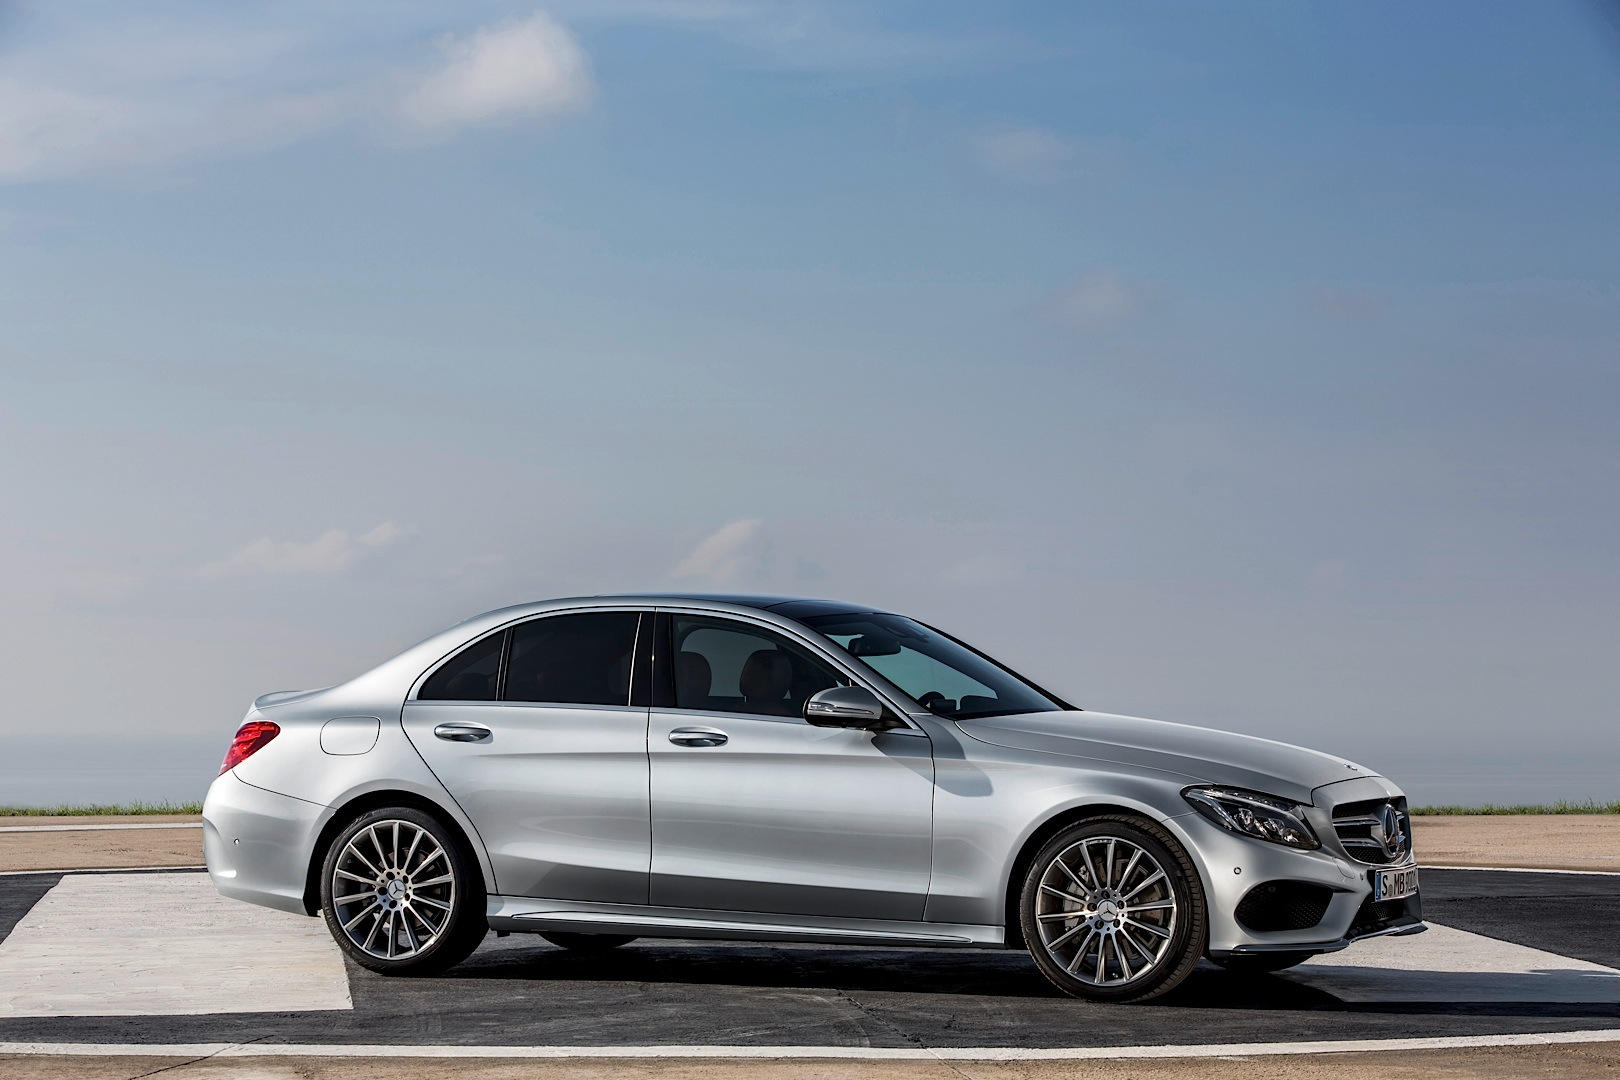 2015 Mercedes Benz C Class W205 Gets Priced In The UK